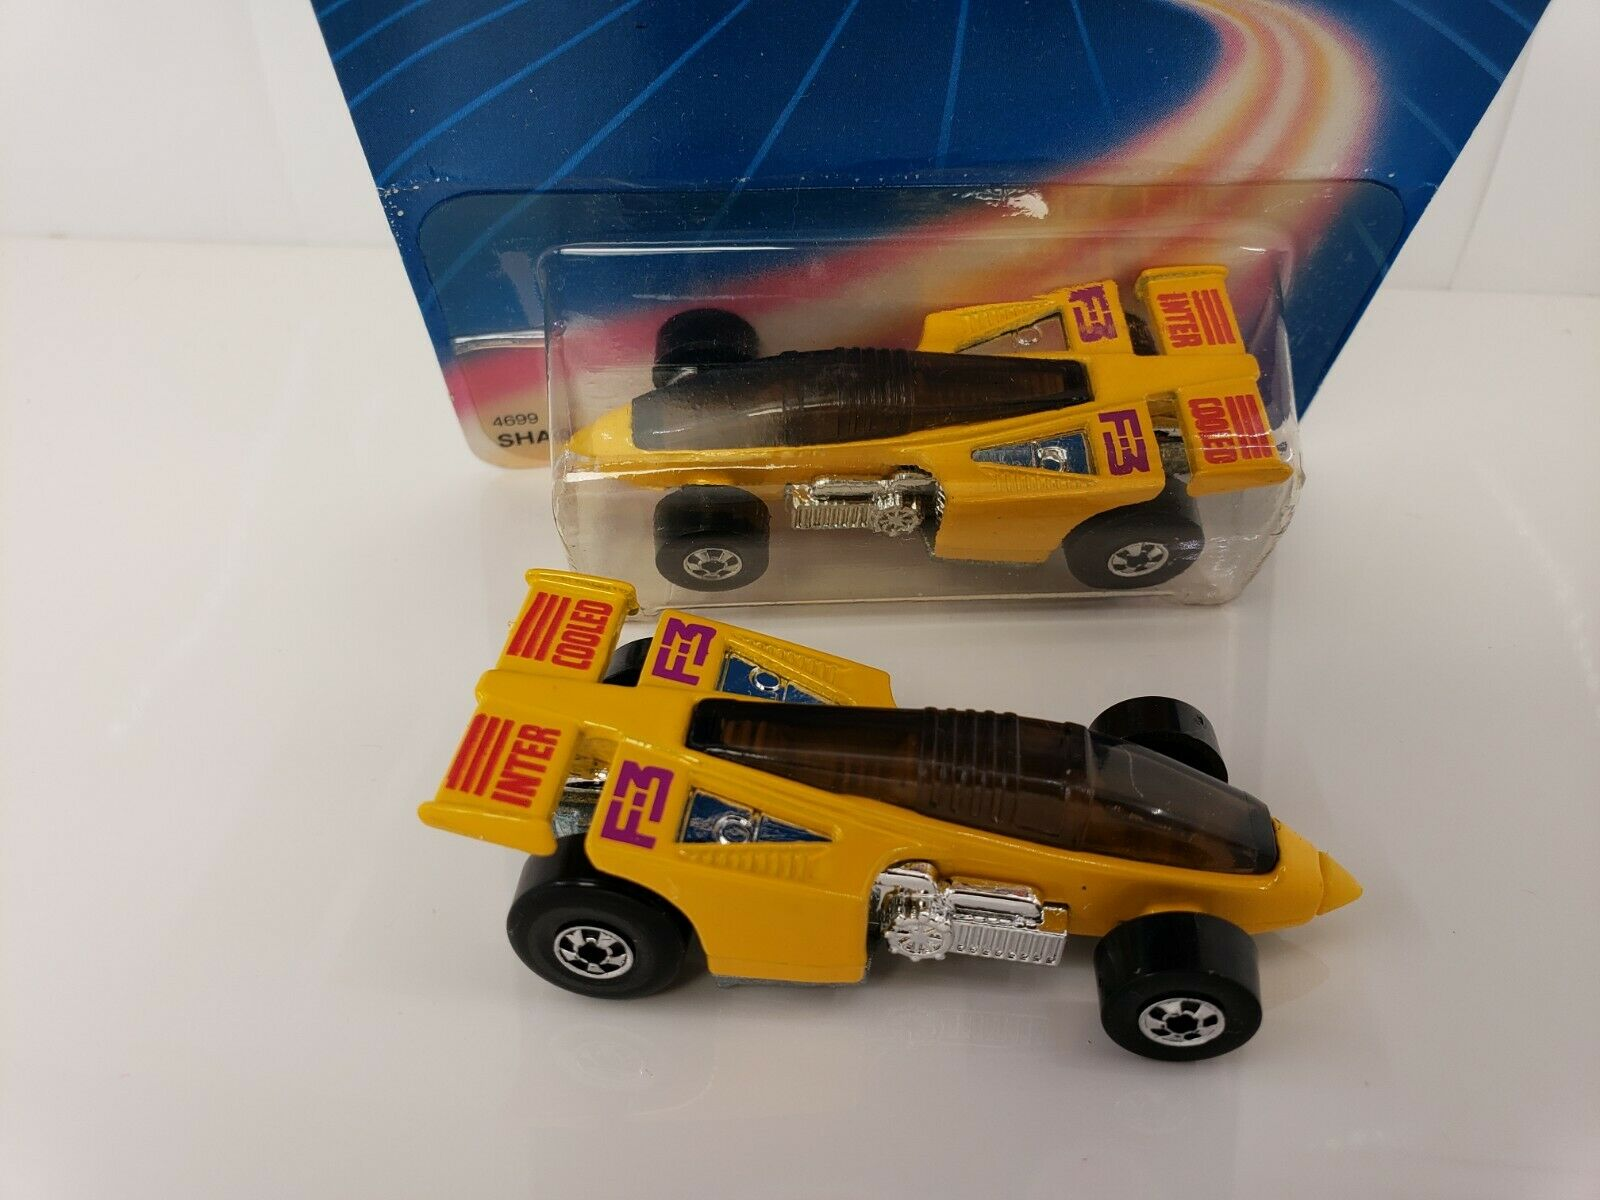 HOTWHEELS 1987 YELLOW SHADOW JET UNPUNCHED CARD, WITH TWO MINT CARS ,KIDSTOYZ®